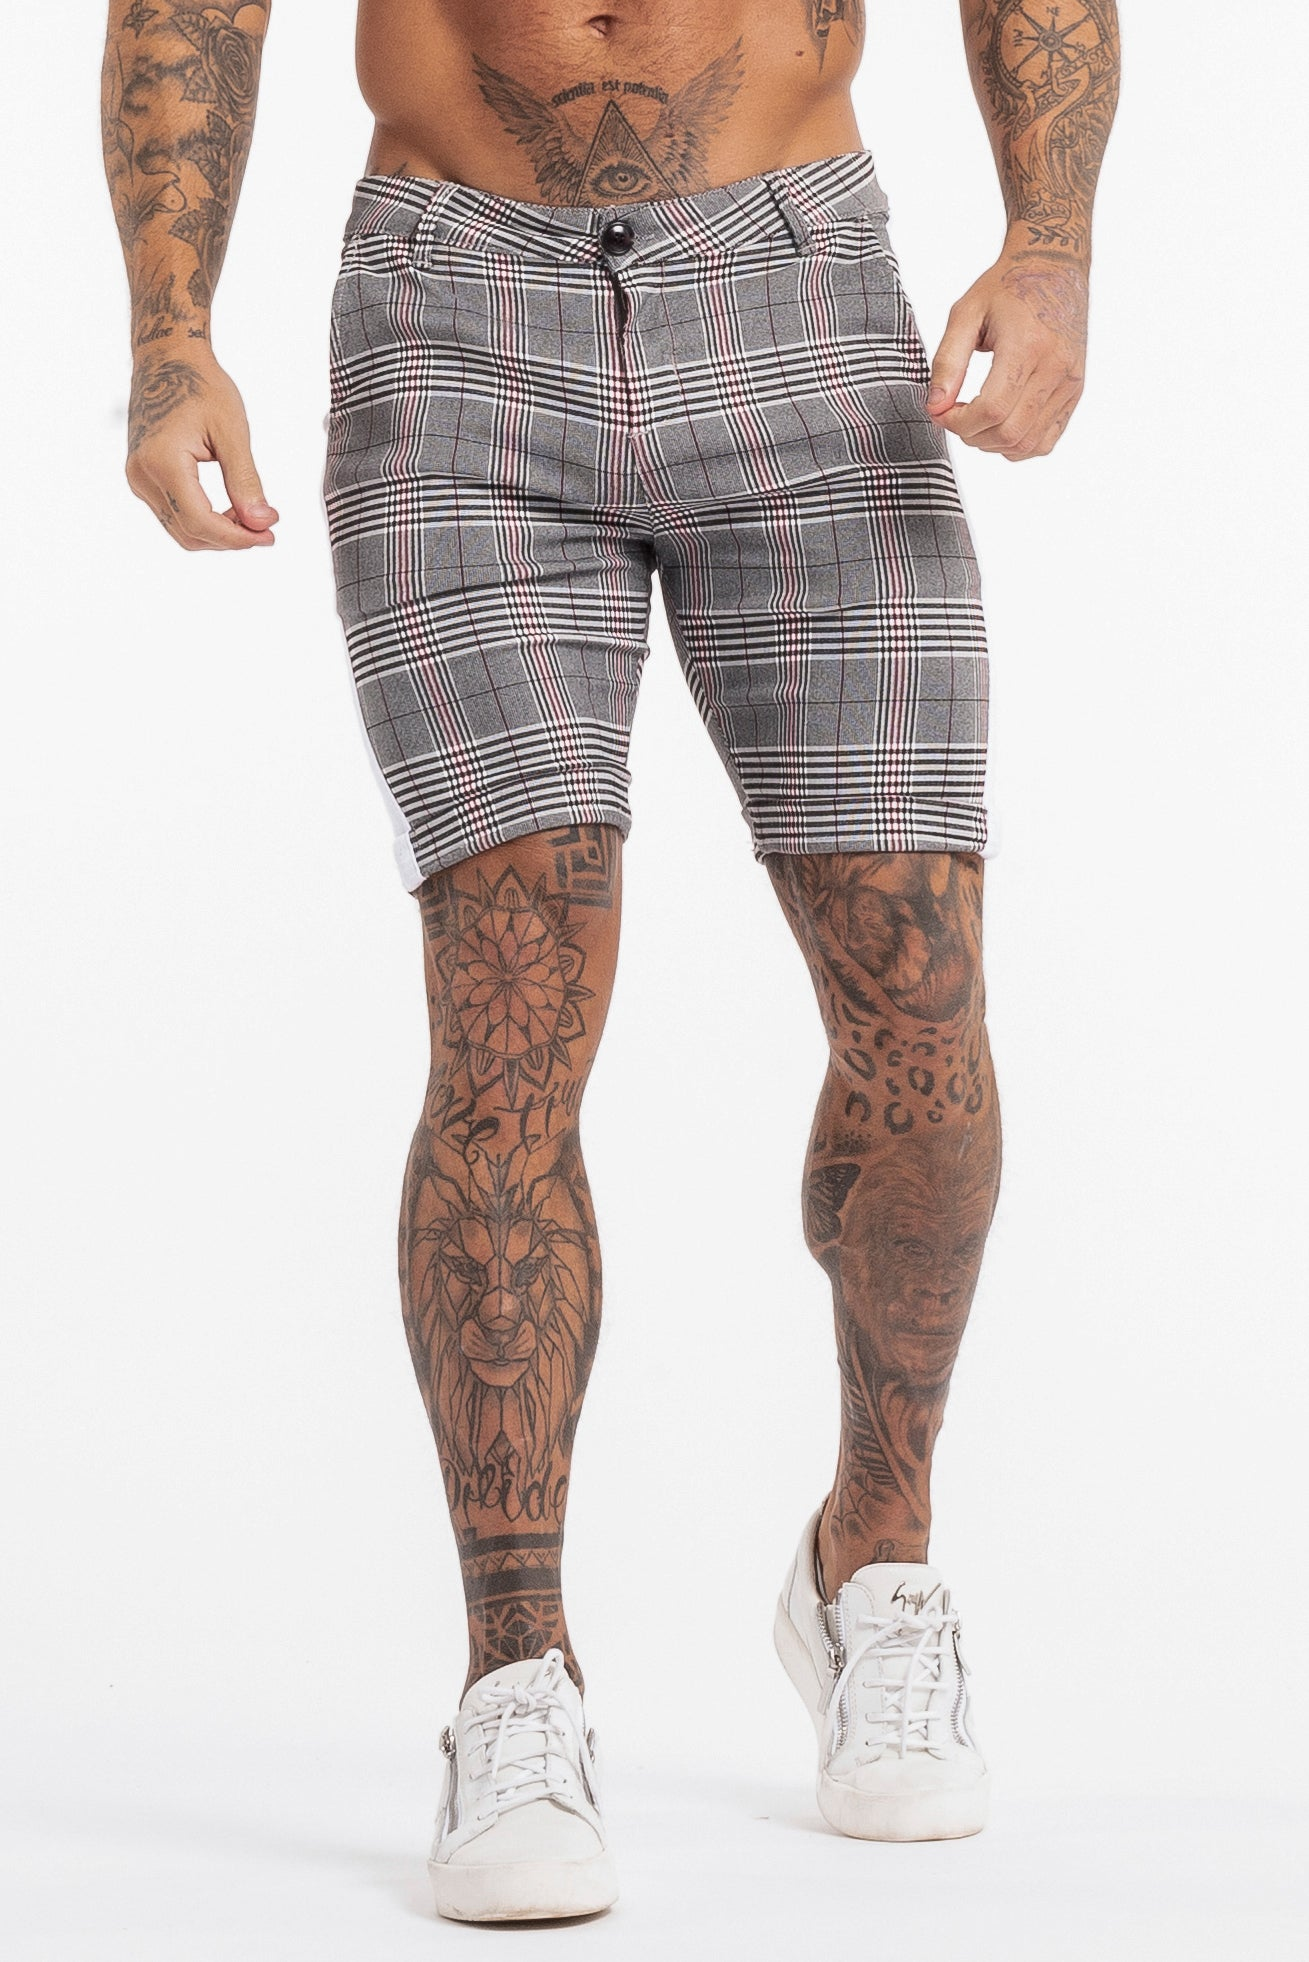 THE VIERA SHORTS - GREY/WHITE